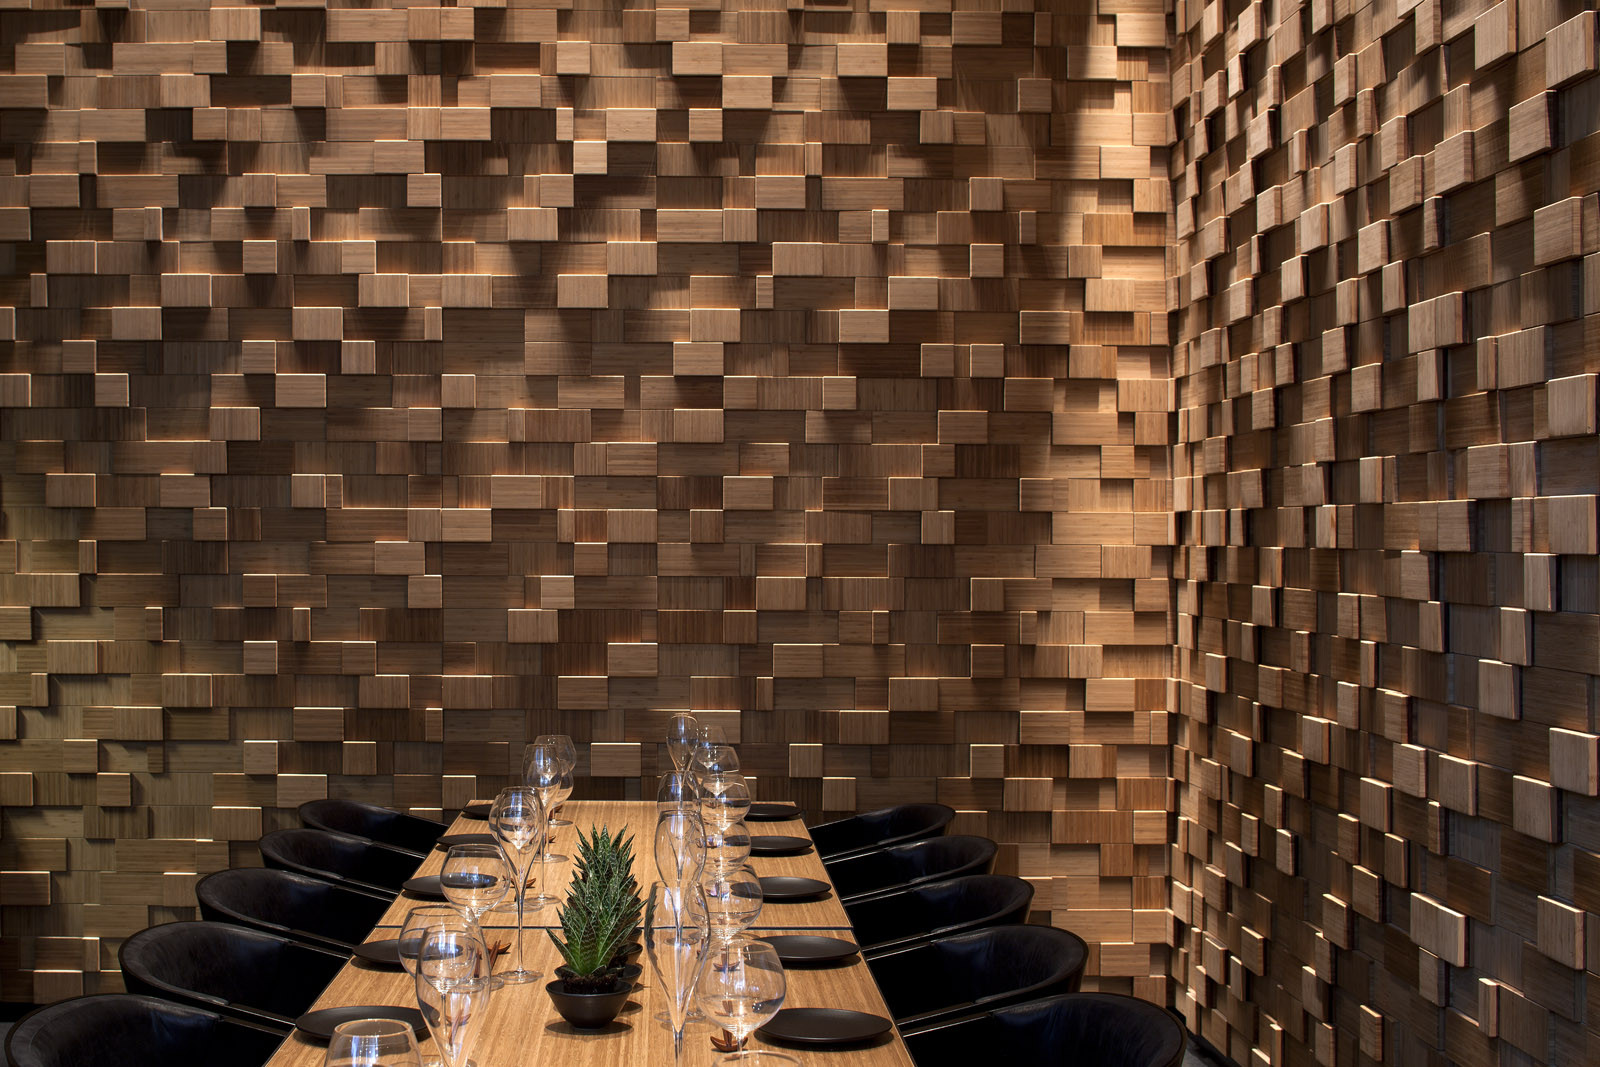 Gallery of taizu restaurant pitsou kedem architects - Deco interieur mur en bois ...